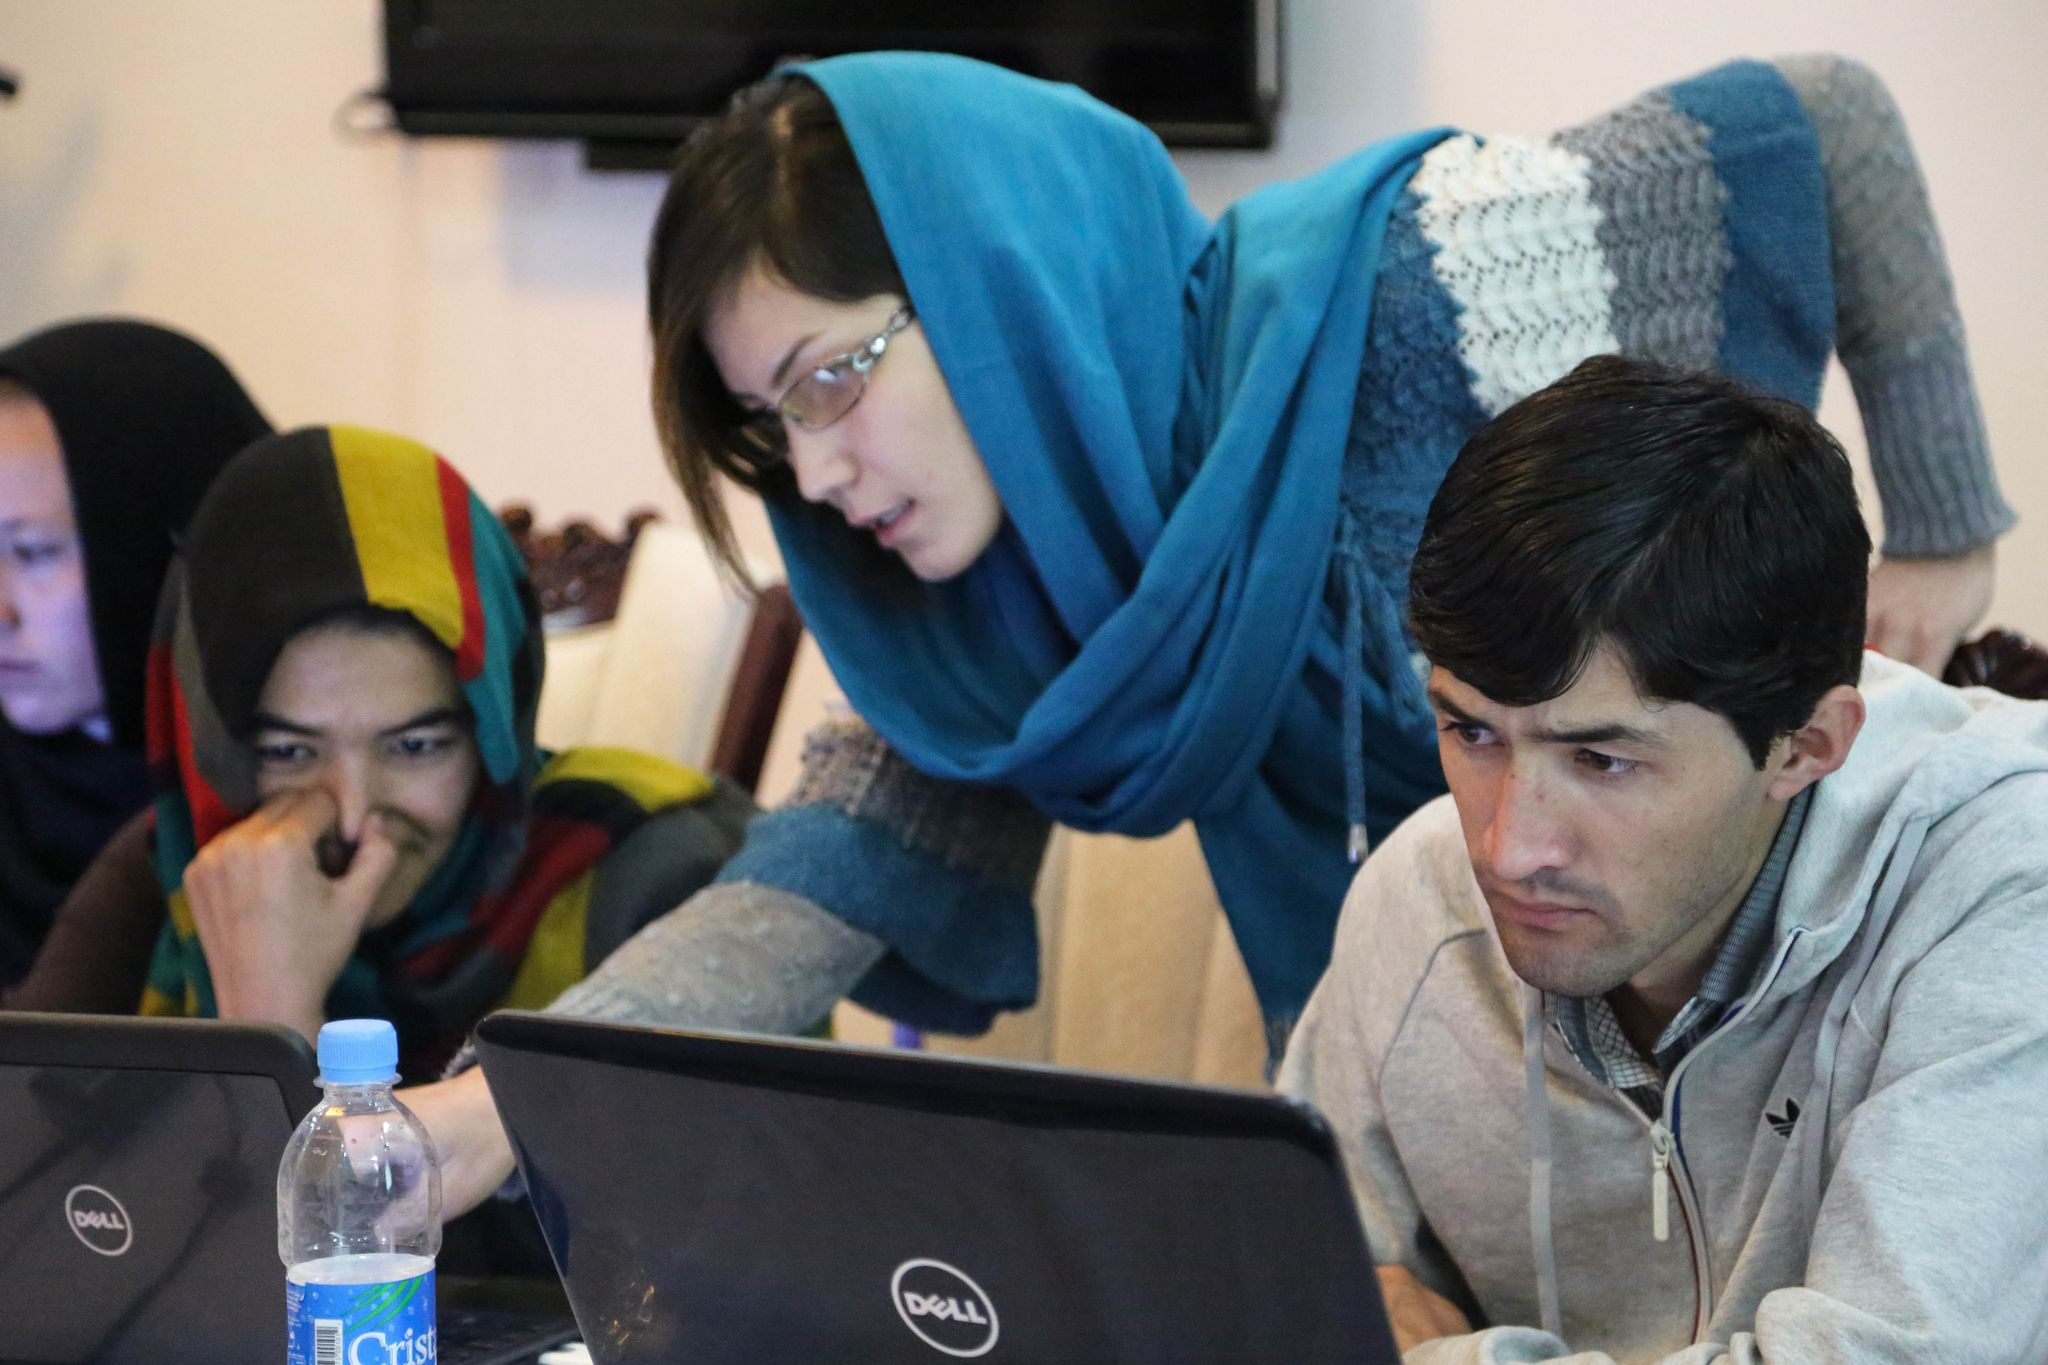 Afghan Dan how social media is changing afghan society | a background